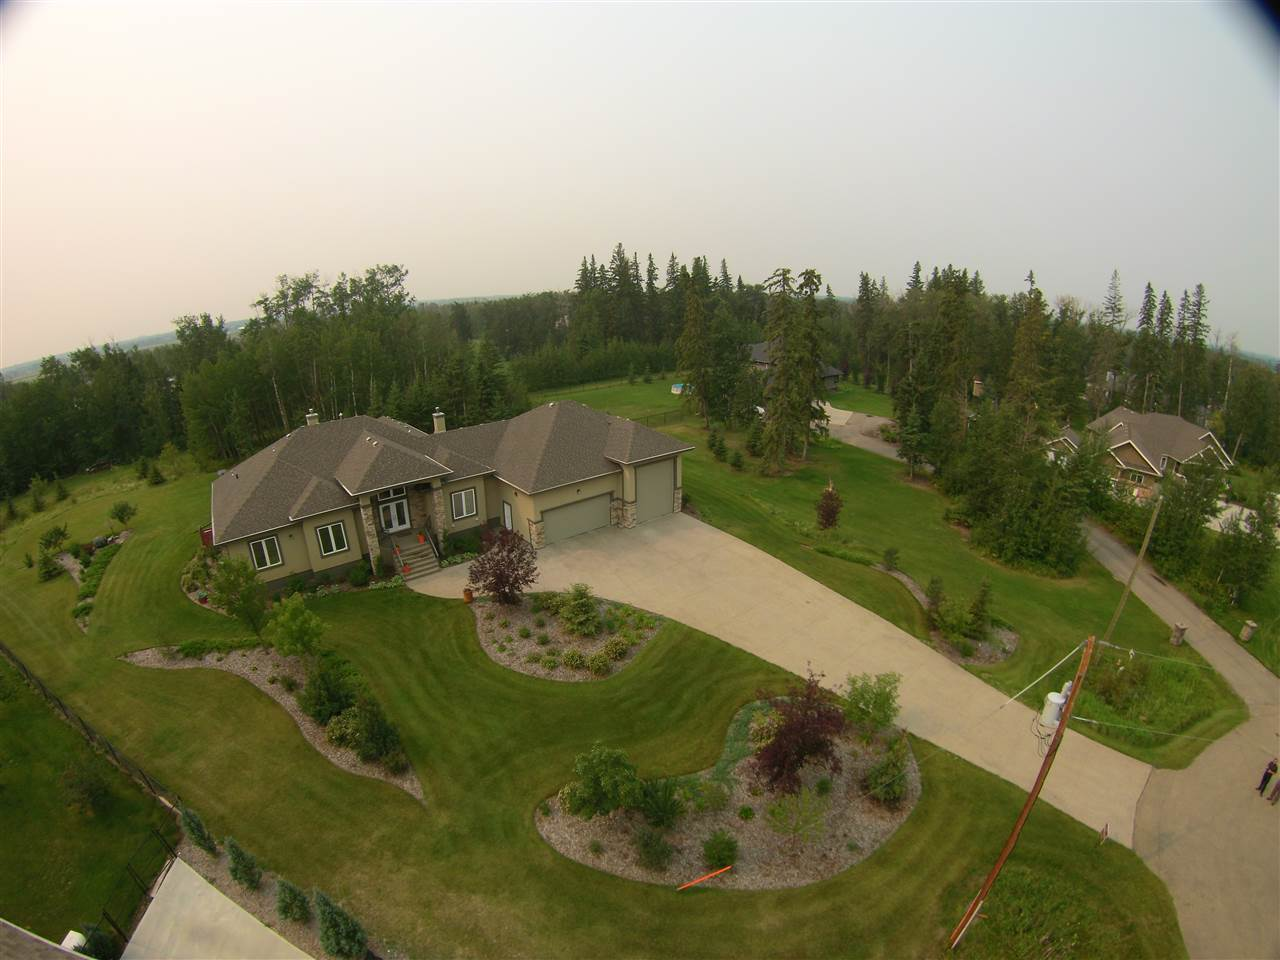 Executive acreage home w/ 2,579 sf., 5 bedroom bungalow on 1.07 manicured ares located on pavement, 5 minutes to Spruce Grove and 15 minutes to Edmonton. Impressive covered columned front entrance lead you to a grand entrance and spacious tiled foyer and den or possible bedroom. 13' ceiling in the great room w/airtight stone fireplace and south facing low-e windows. The kitchen is a cooks dream and offers cupboards/drawers galore, huge island/eating bar, granite counter tops, amazing walk through pantry, spacious eating area, w/ access to the 14x16 covered deck. Amazing master suite with 6 pce ensuite w/steam shower and huge W/I  closet. There's more, the spriral staircase leads to the huge basement w/rec room & 2nd fireplace, wet bar, exercise/theatre room, bedroom,  w/wiring for entire house audio system. Air conditioned, in floor heat. Professionally designed landscaping,  38x40 garage, room for 6 cars or RV. Aggregate driveway. Private door to basement. This is truly a defining address.